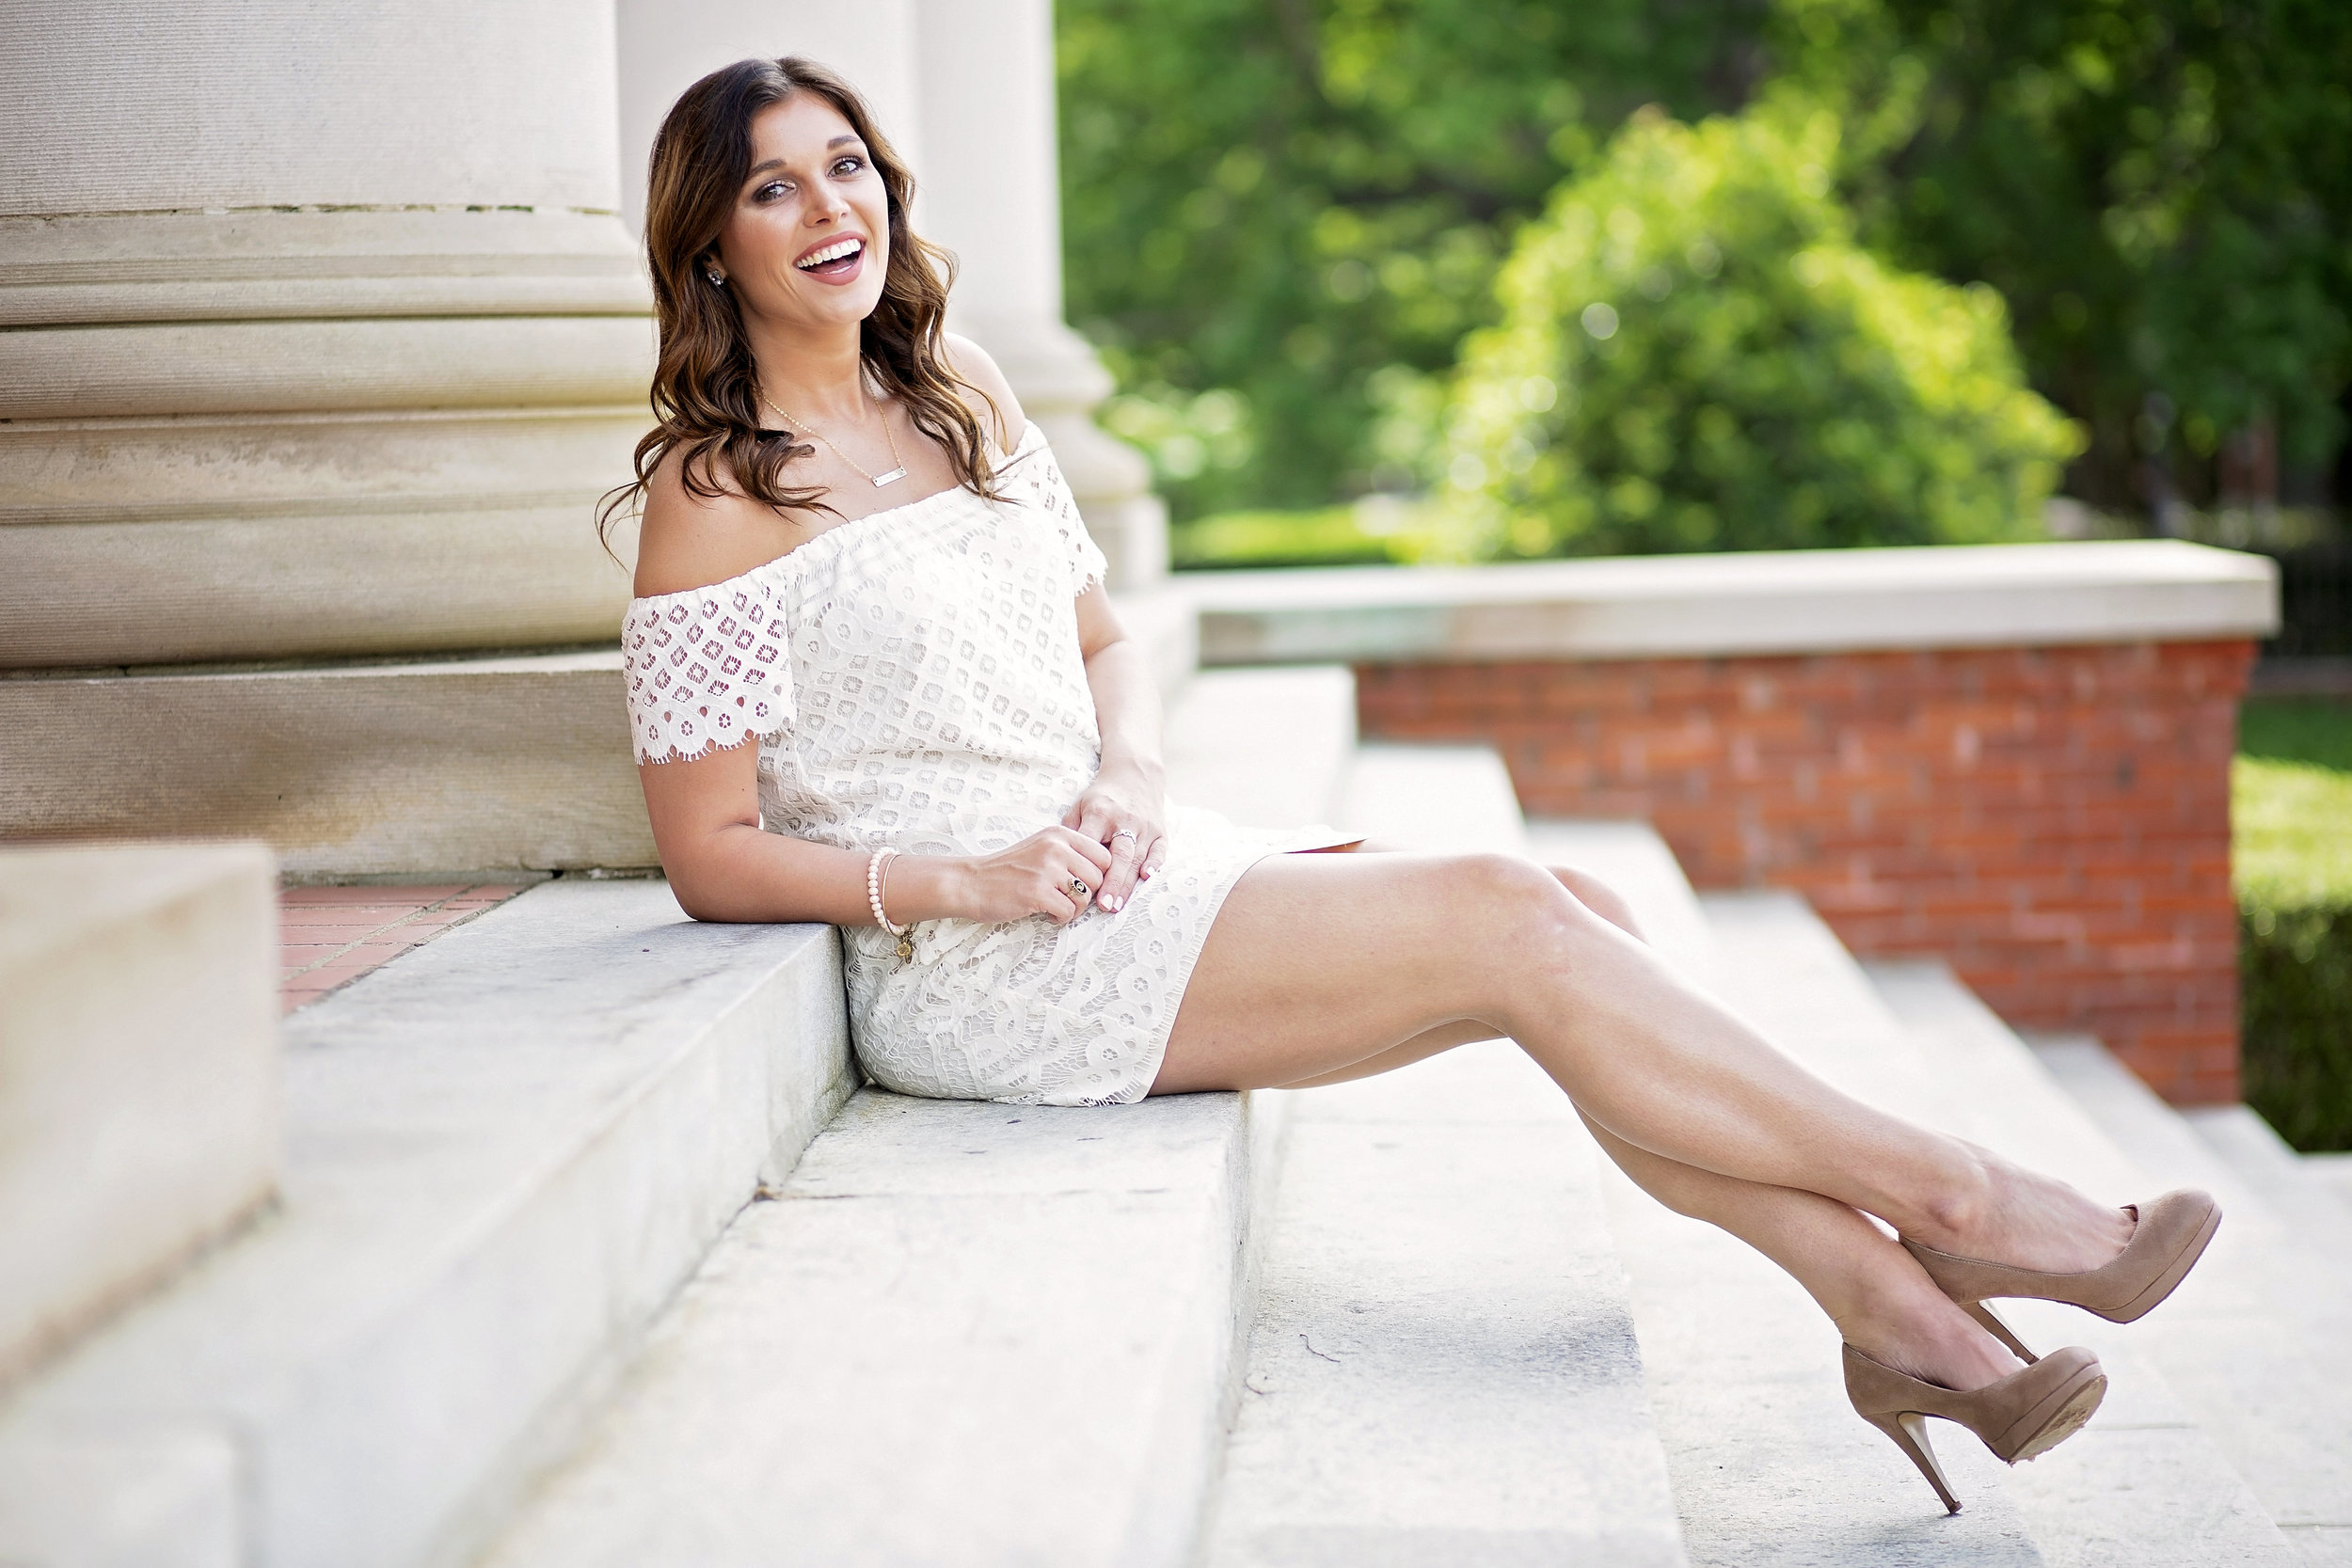 clemson university senior portrait photographer